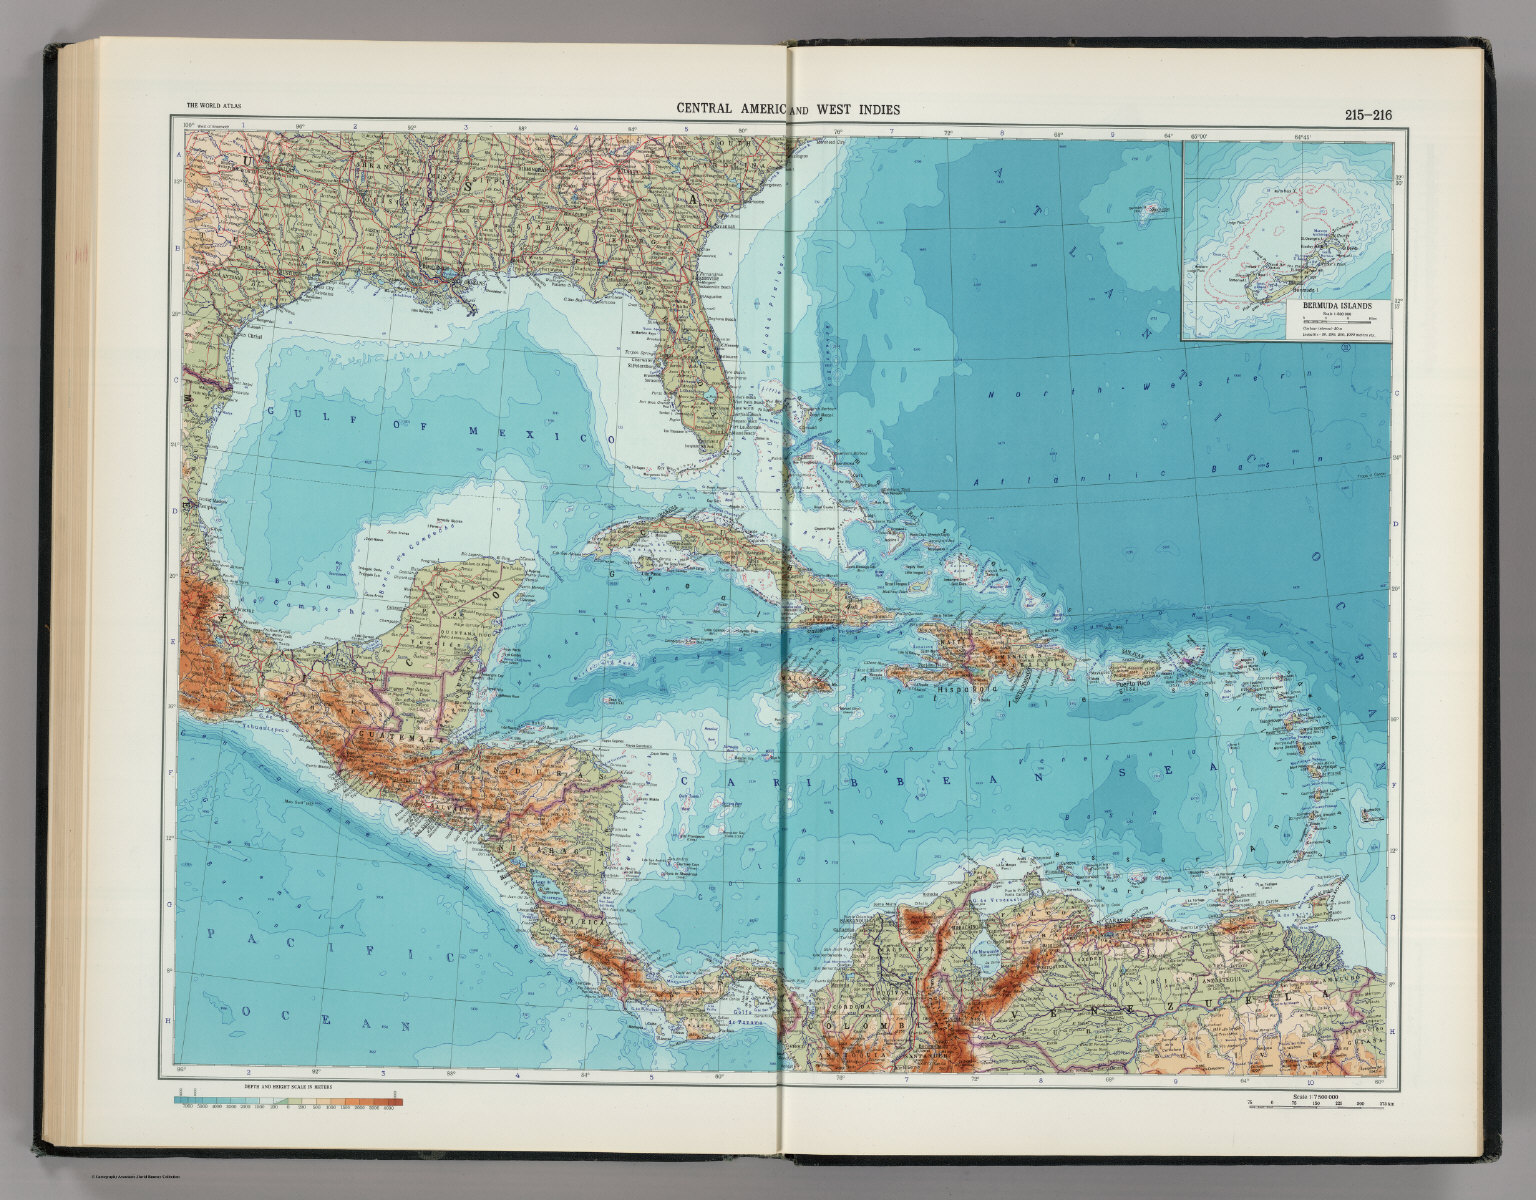 215 216 central america and west indies the world atlas david central america and west indies the world atlas gumiabroncs Image collections